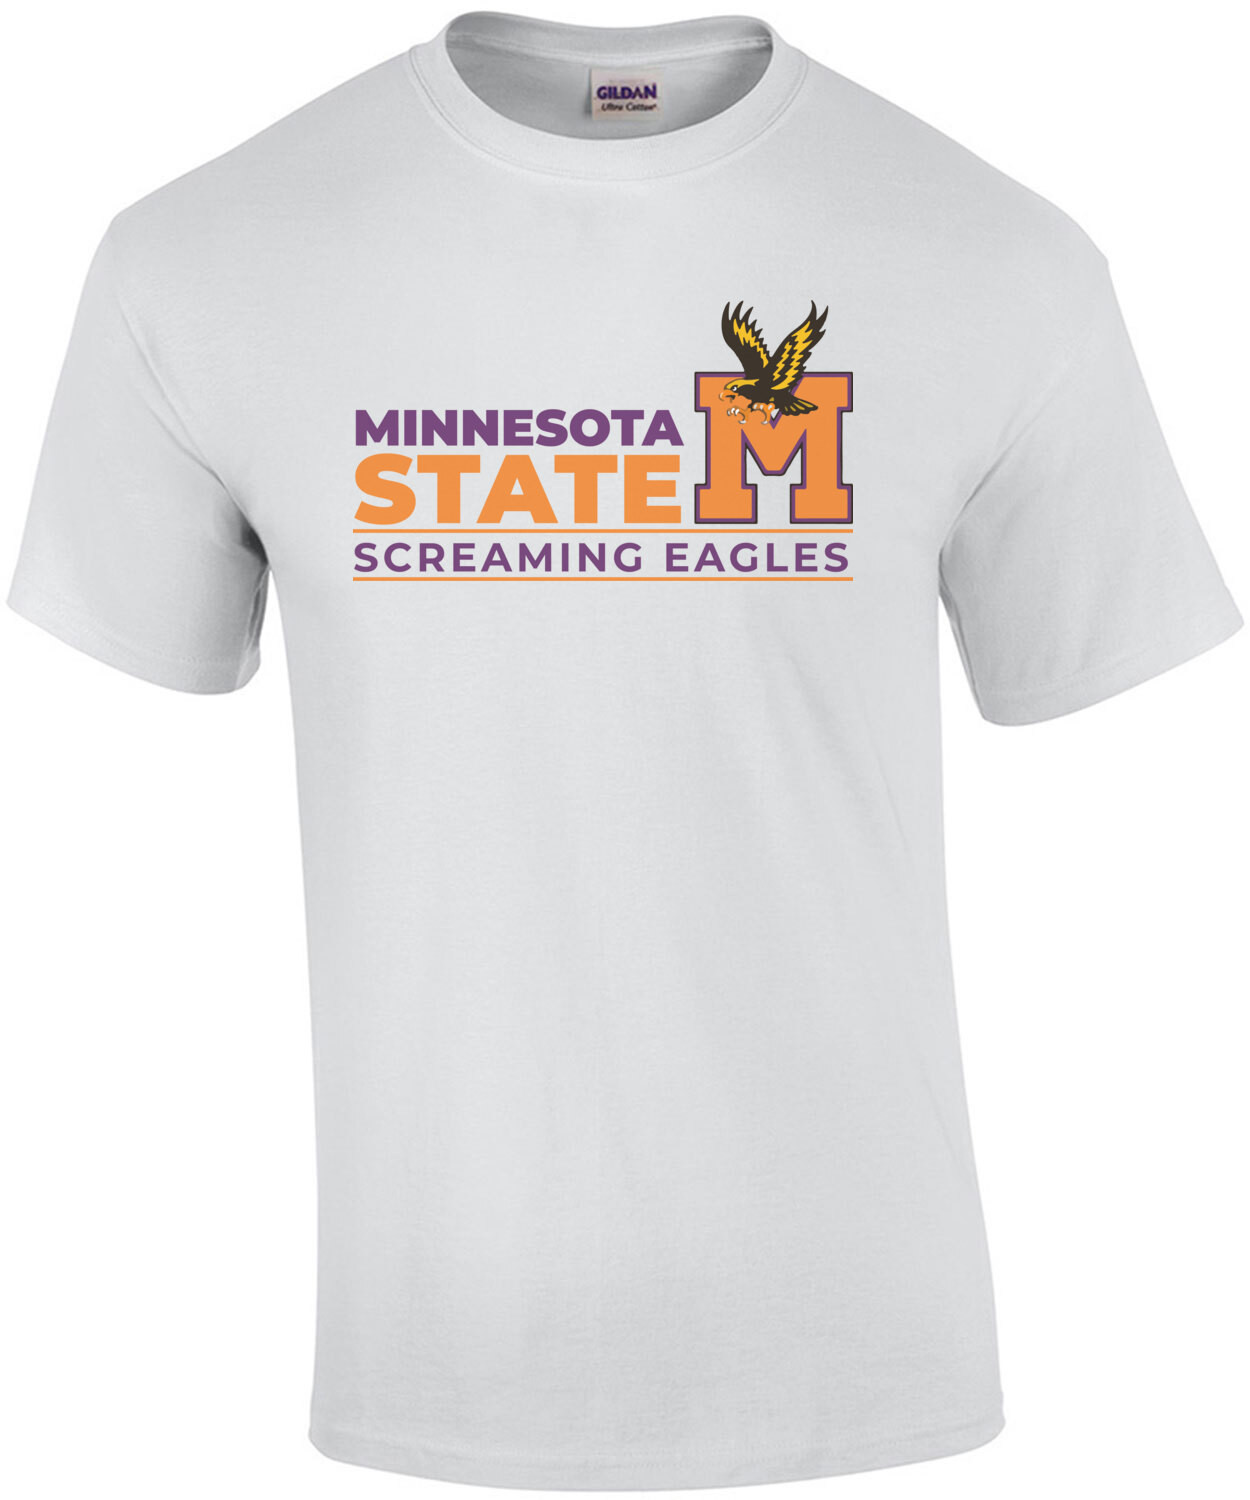 Minnesota State Screaming Eagles - Coach 80's T-Shirt